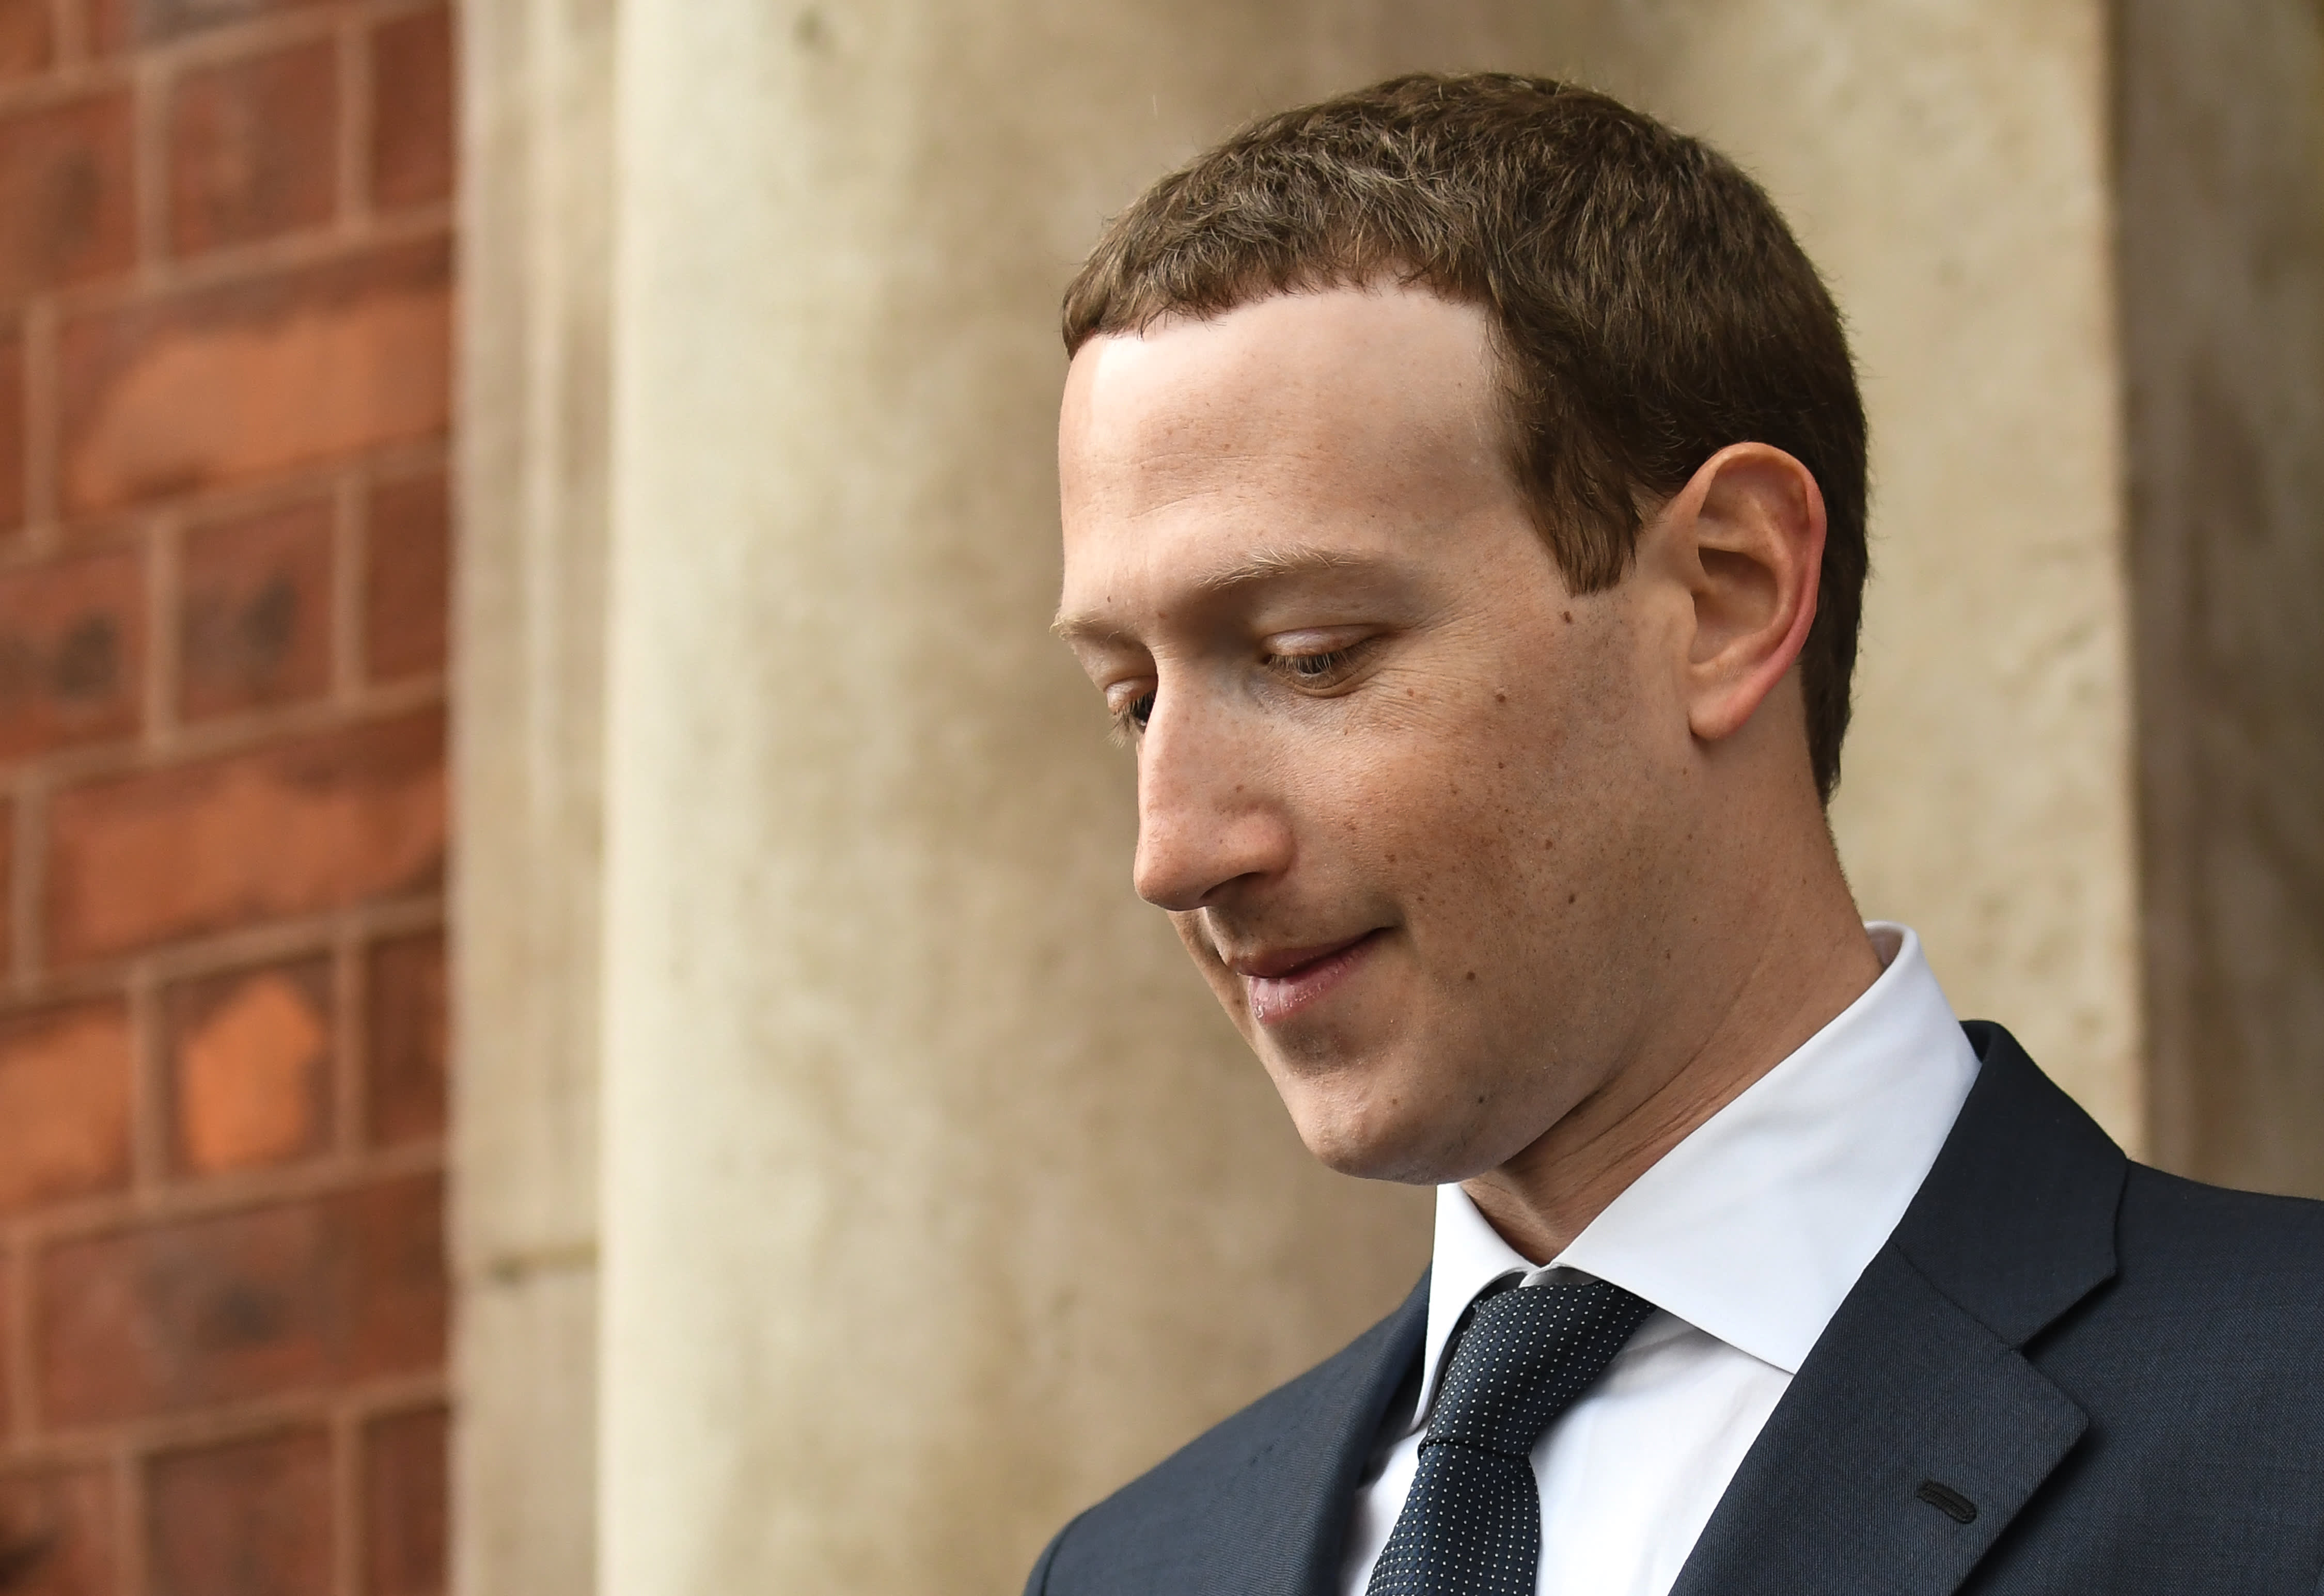 Facebook is playing defense after scathing reports on the company's failure to protect users - CNBC